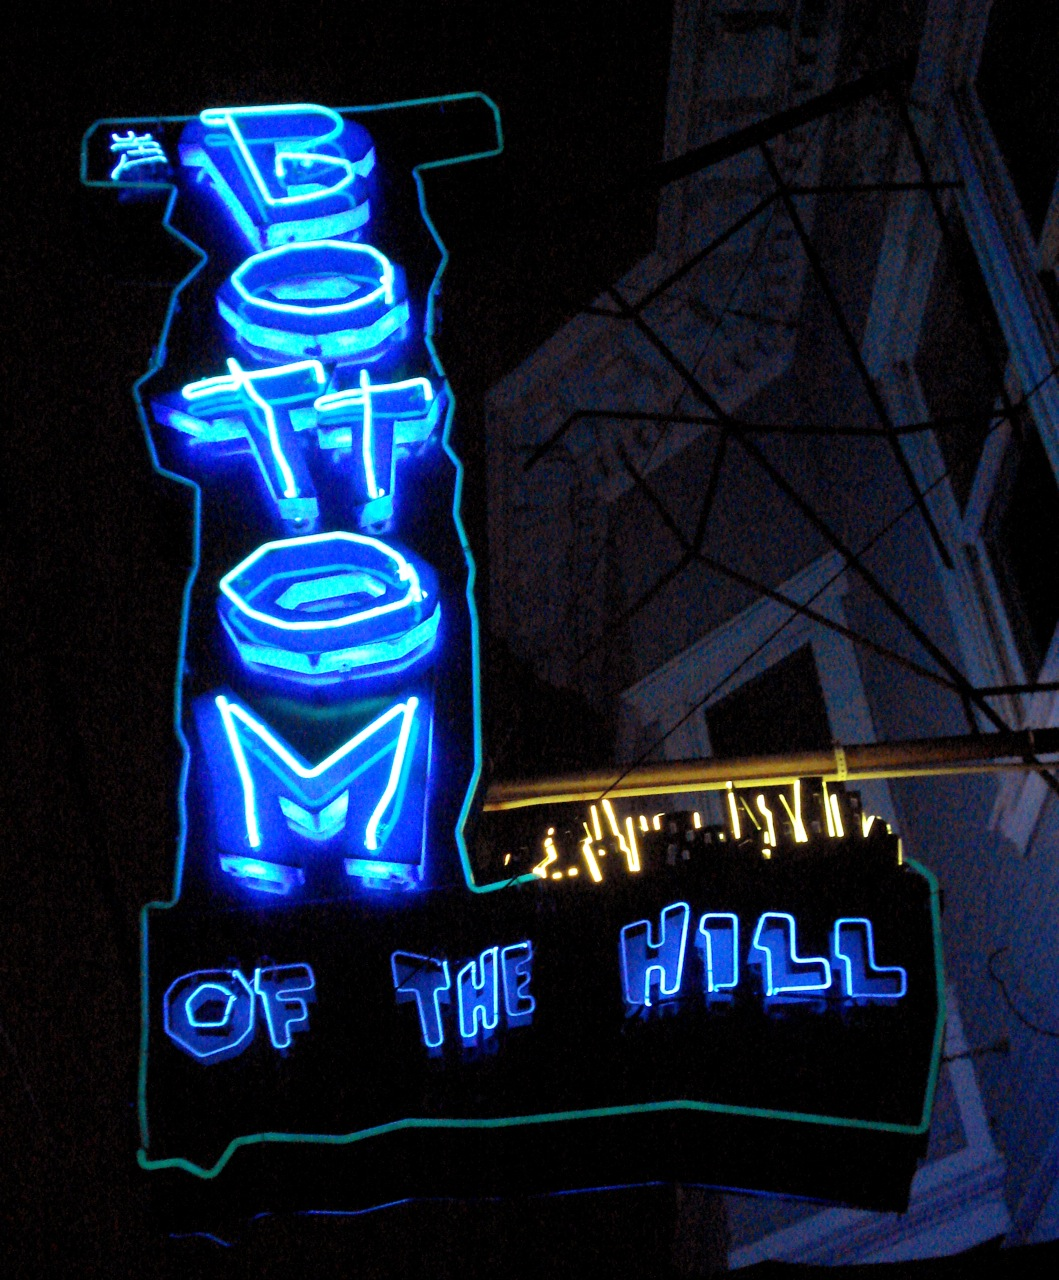 http://www.bottomofthehill.com/images/Bsignflickrx.jpg